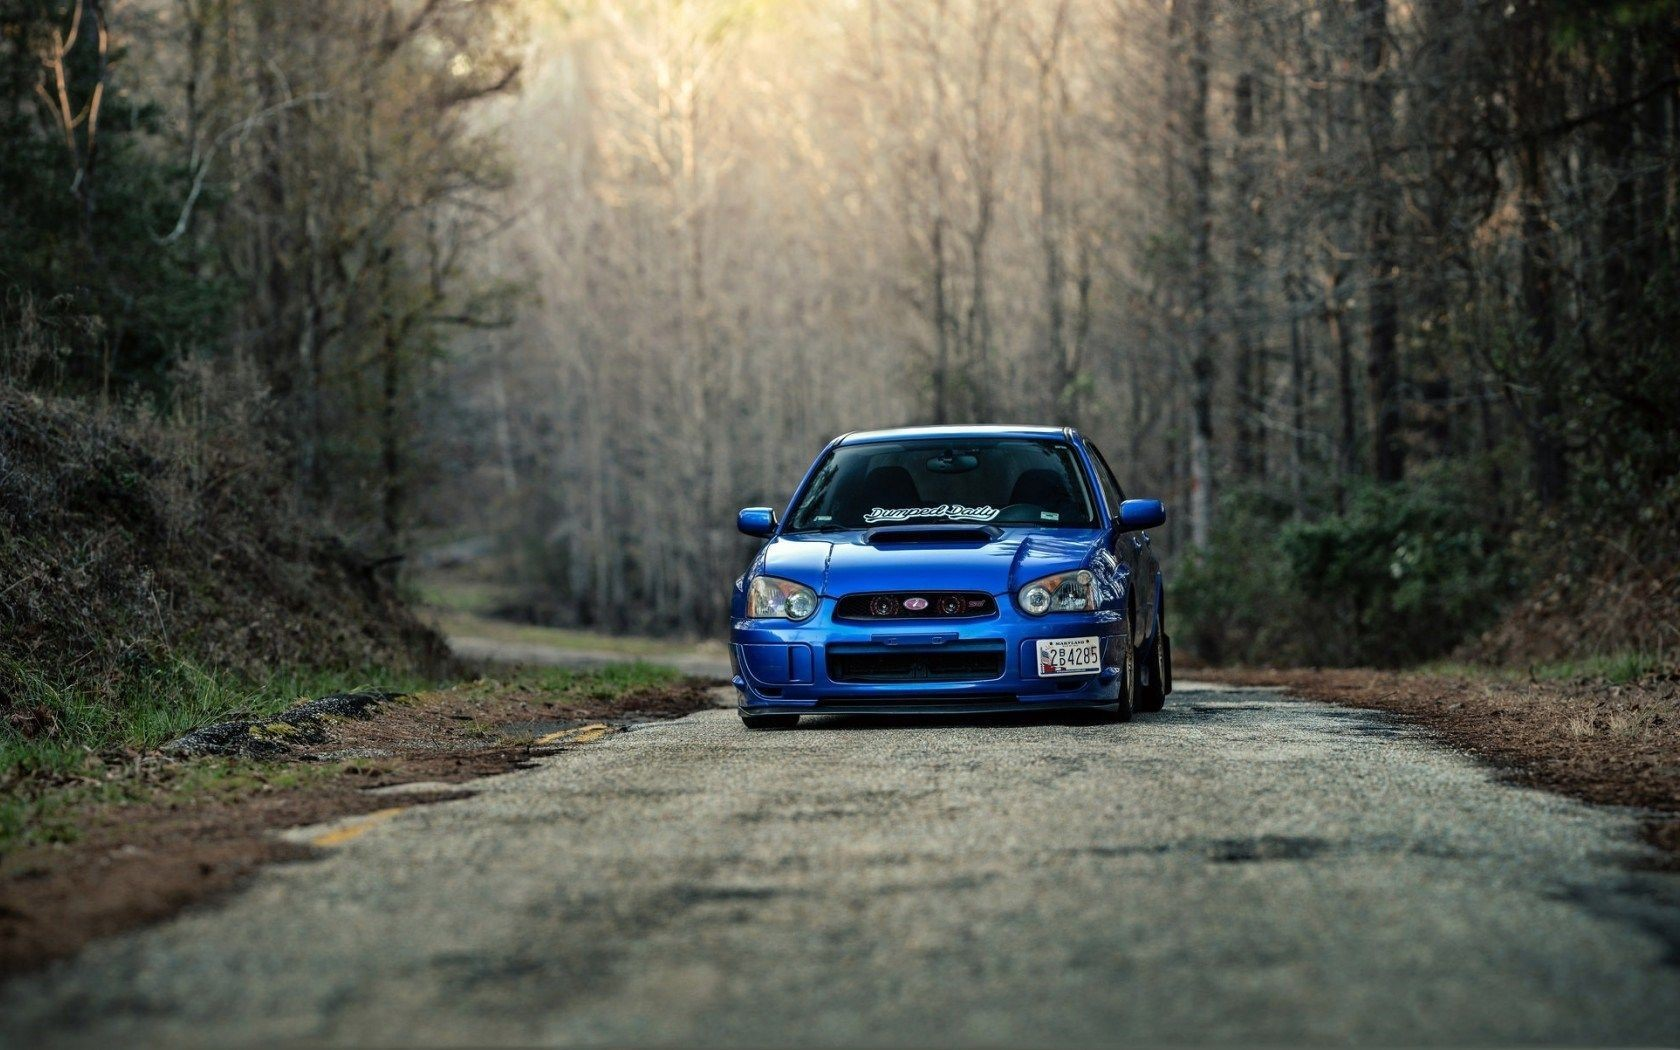 Subaru Rally Car Mobile Wallpapers